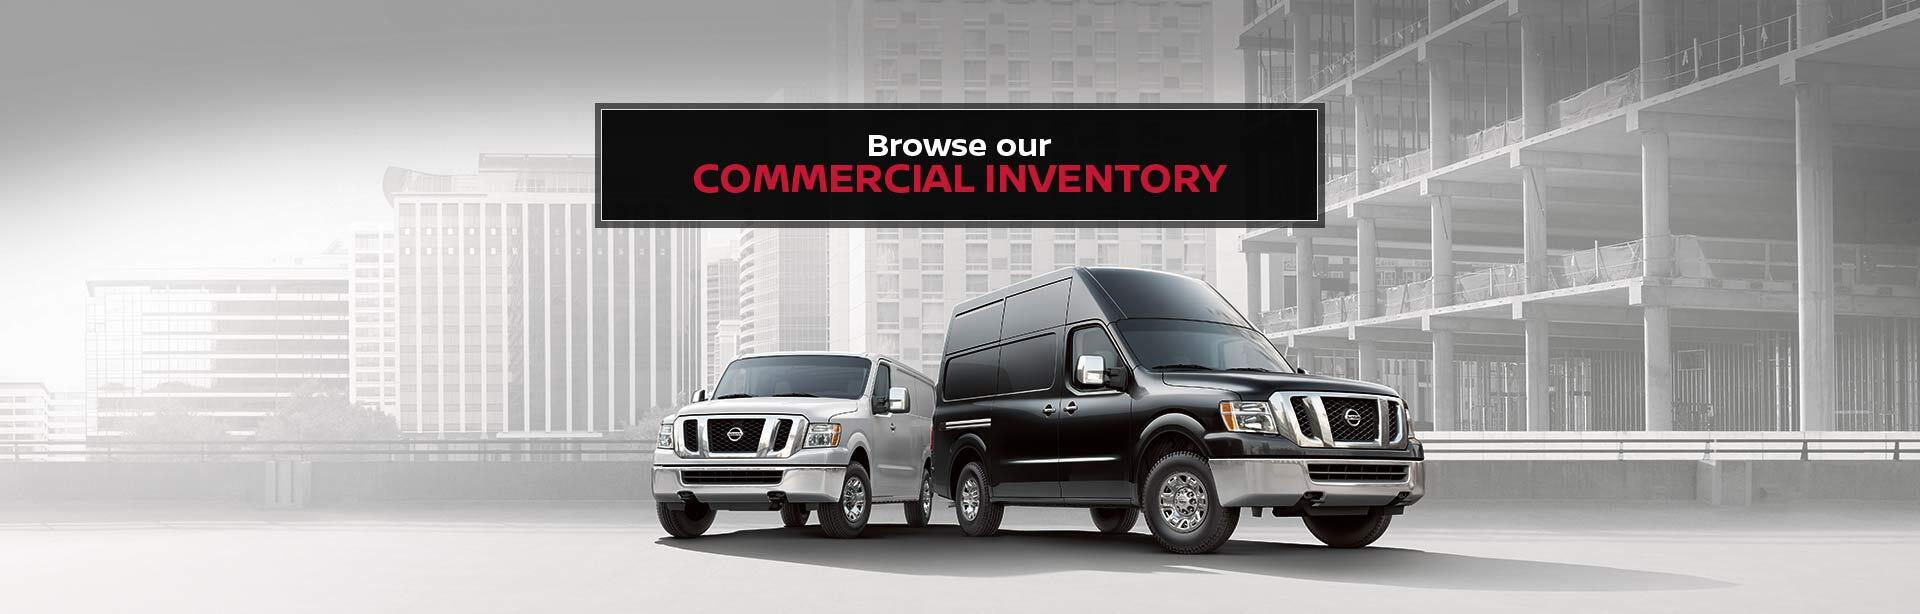 Commercial Inventory